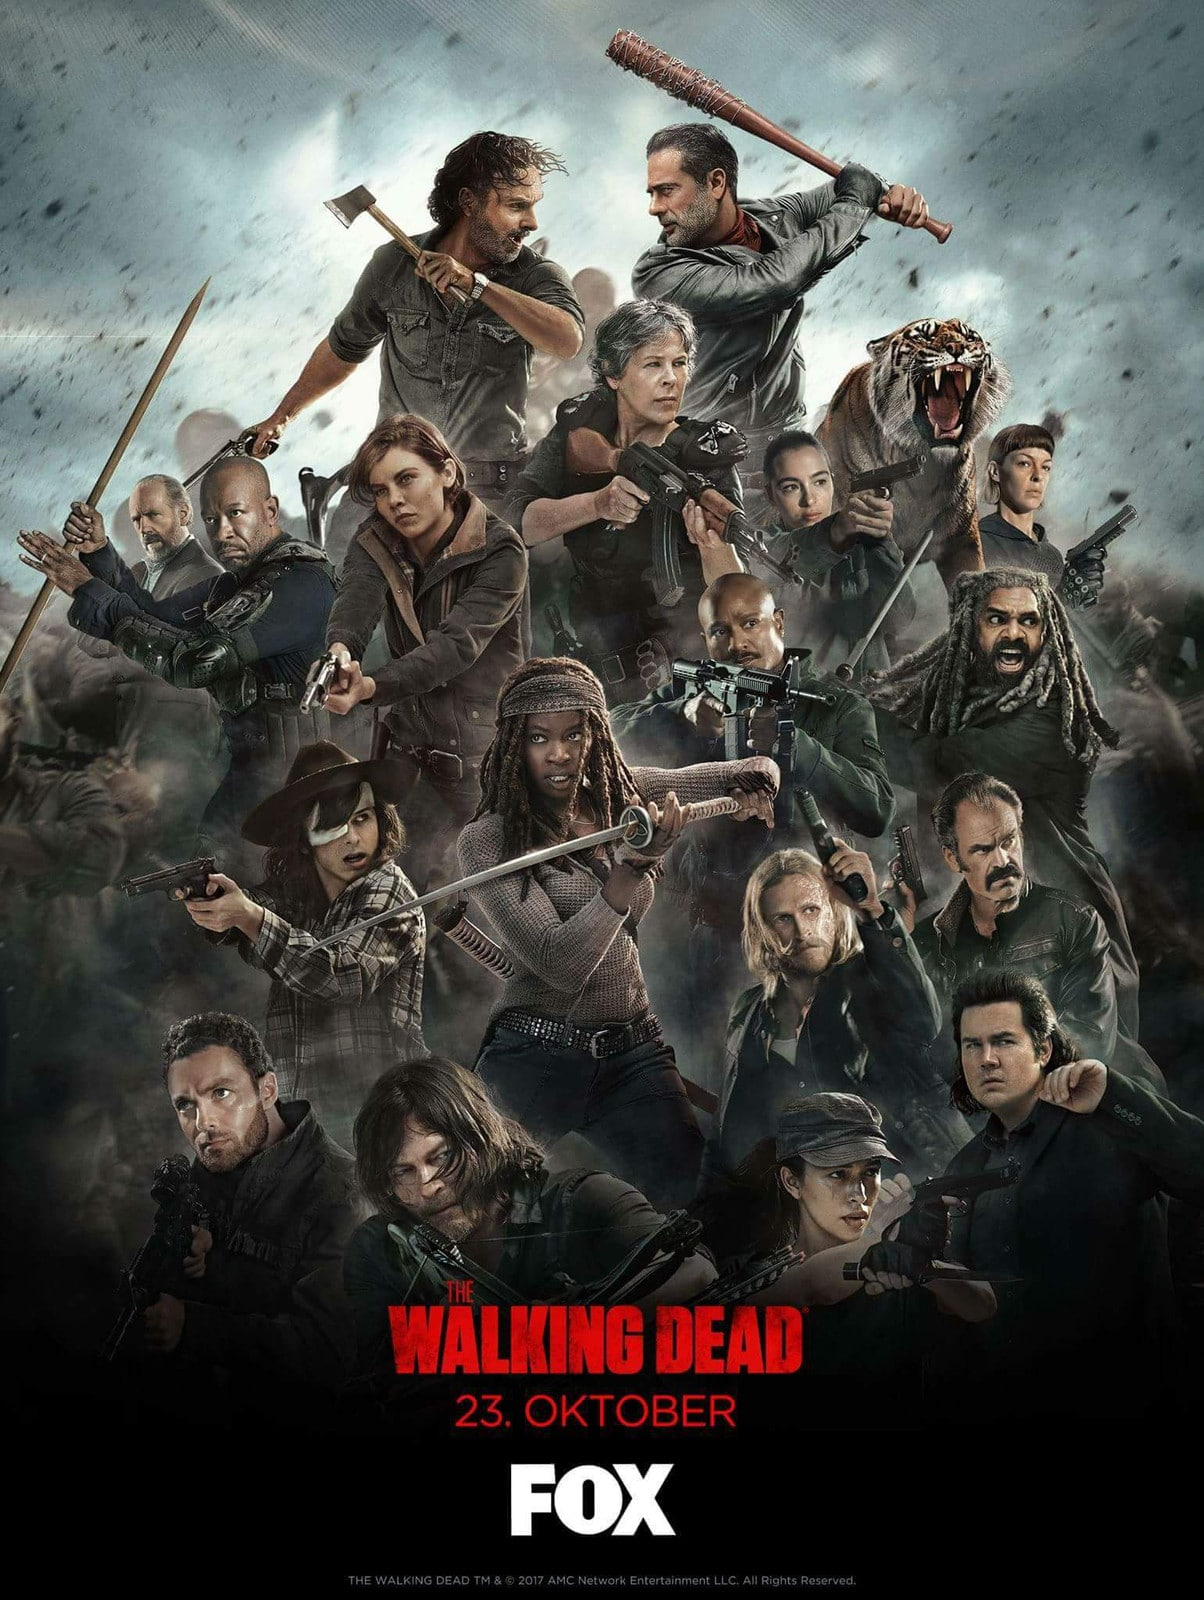 The Walking Dead Terminus poster